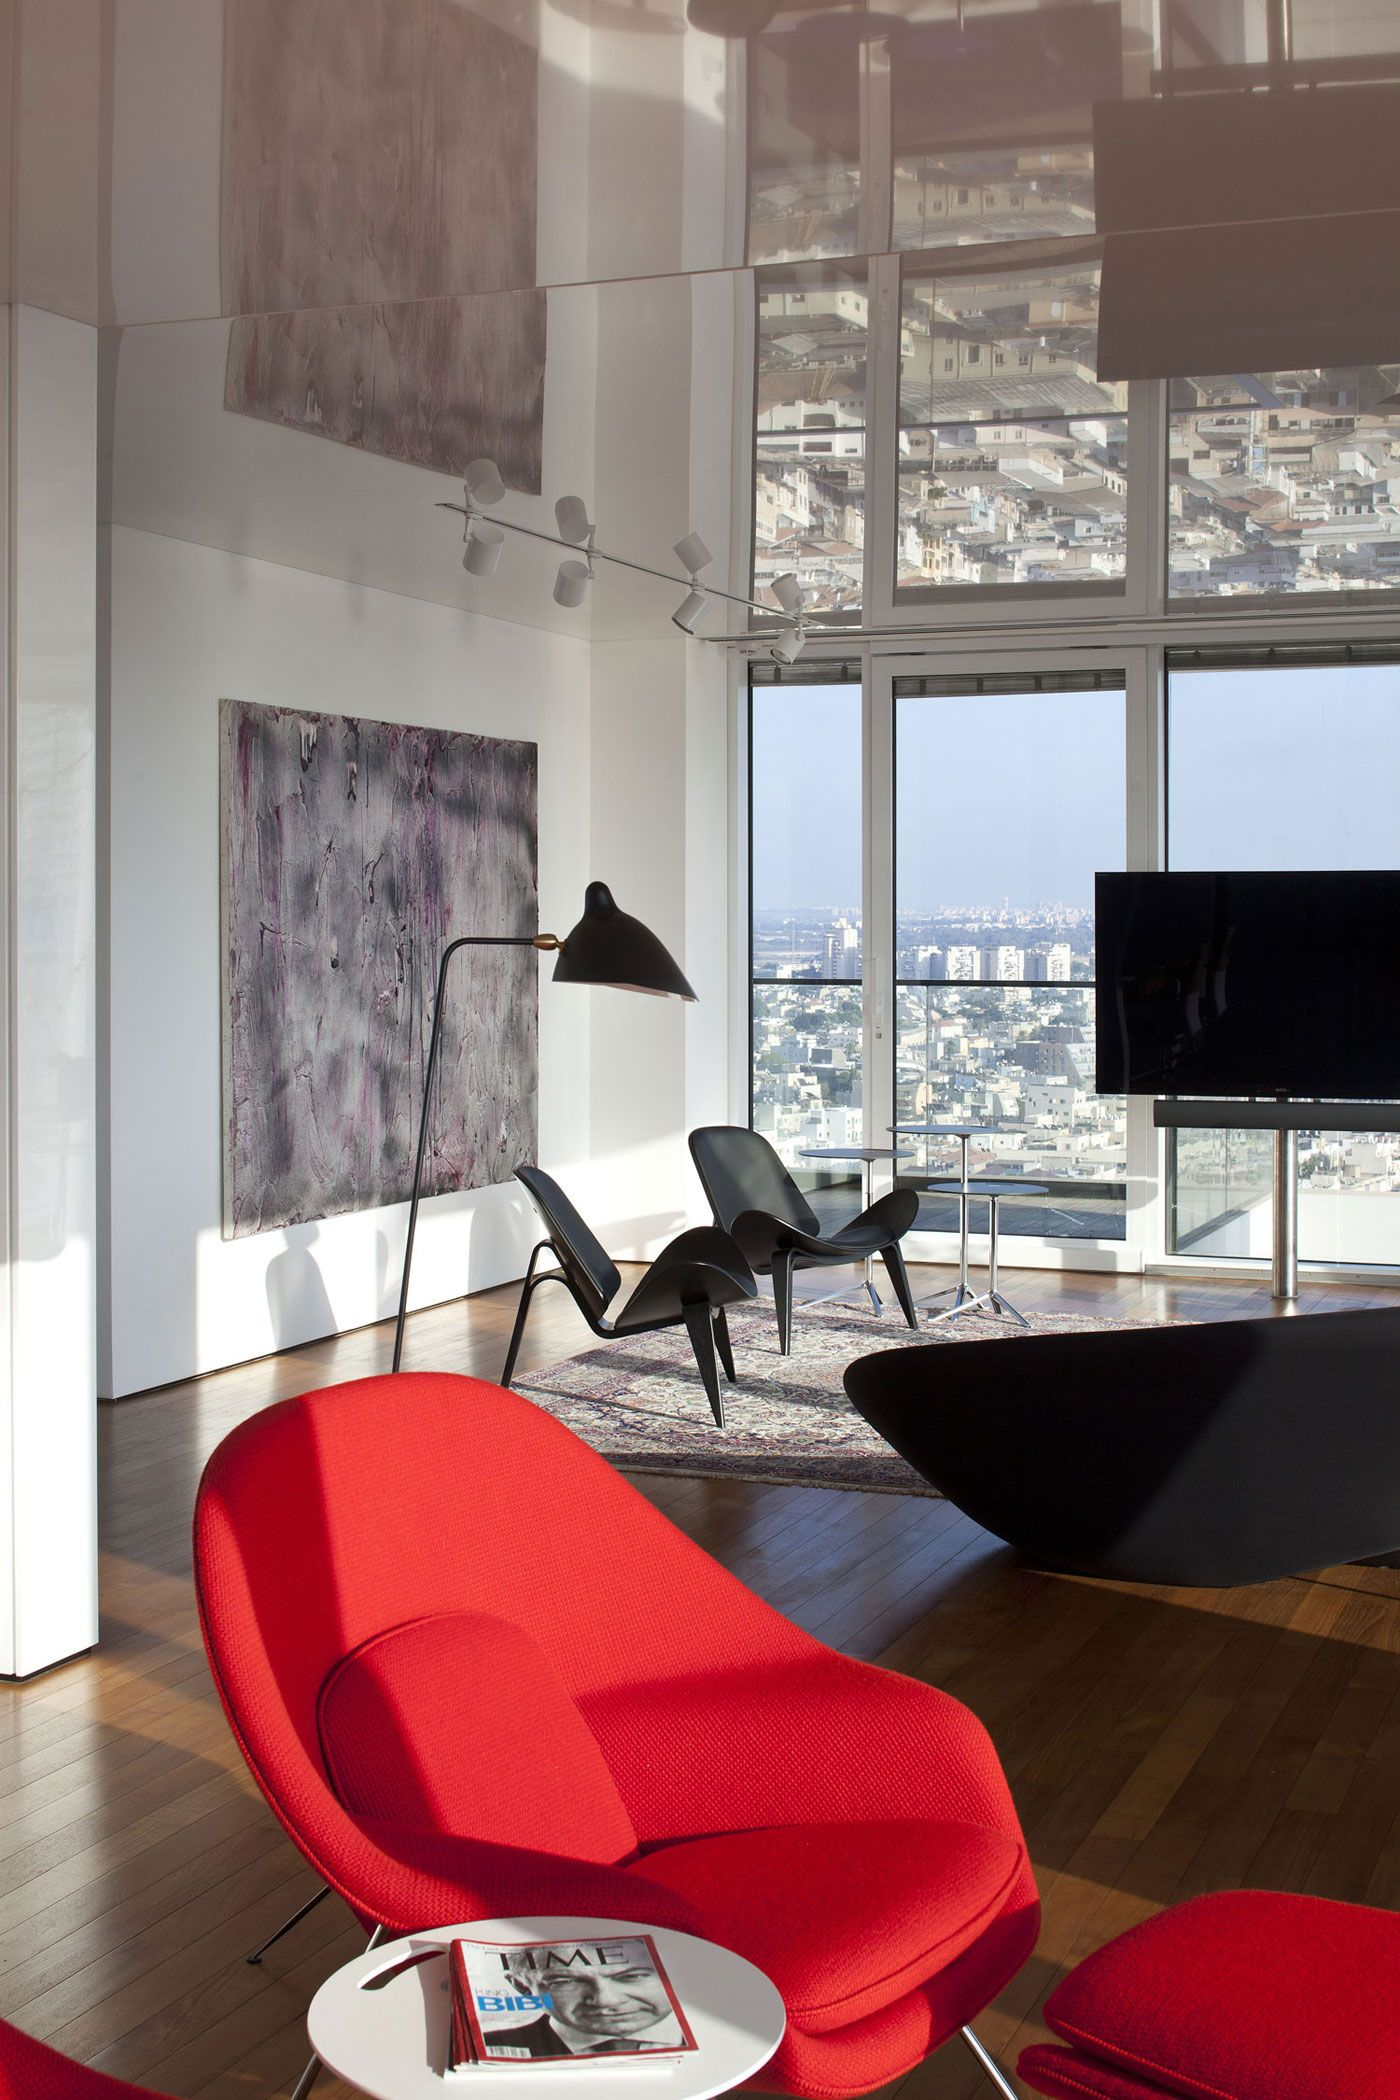 Beau R1T Apartment By Partizki. Womb ChairRed ChairsLounge ChairsArchitecture ...